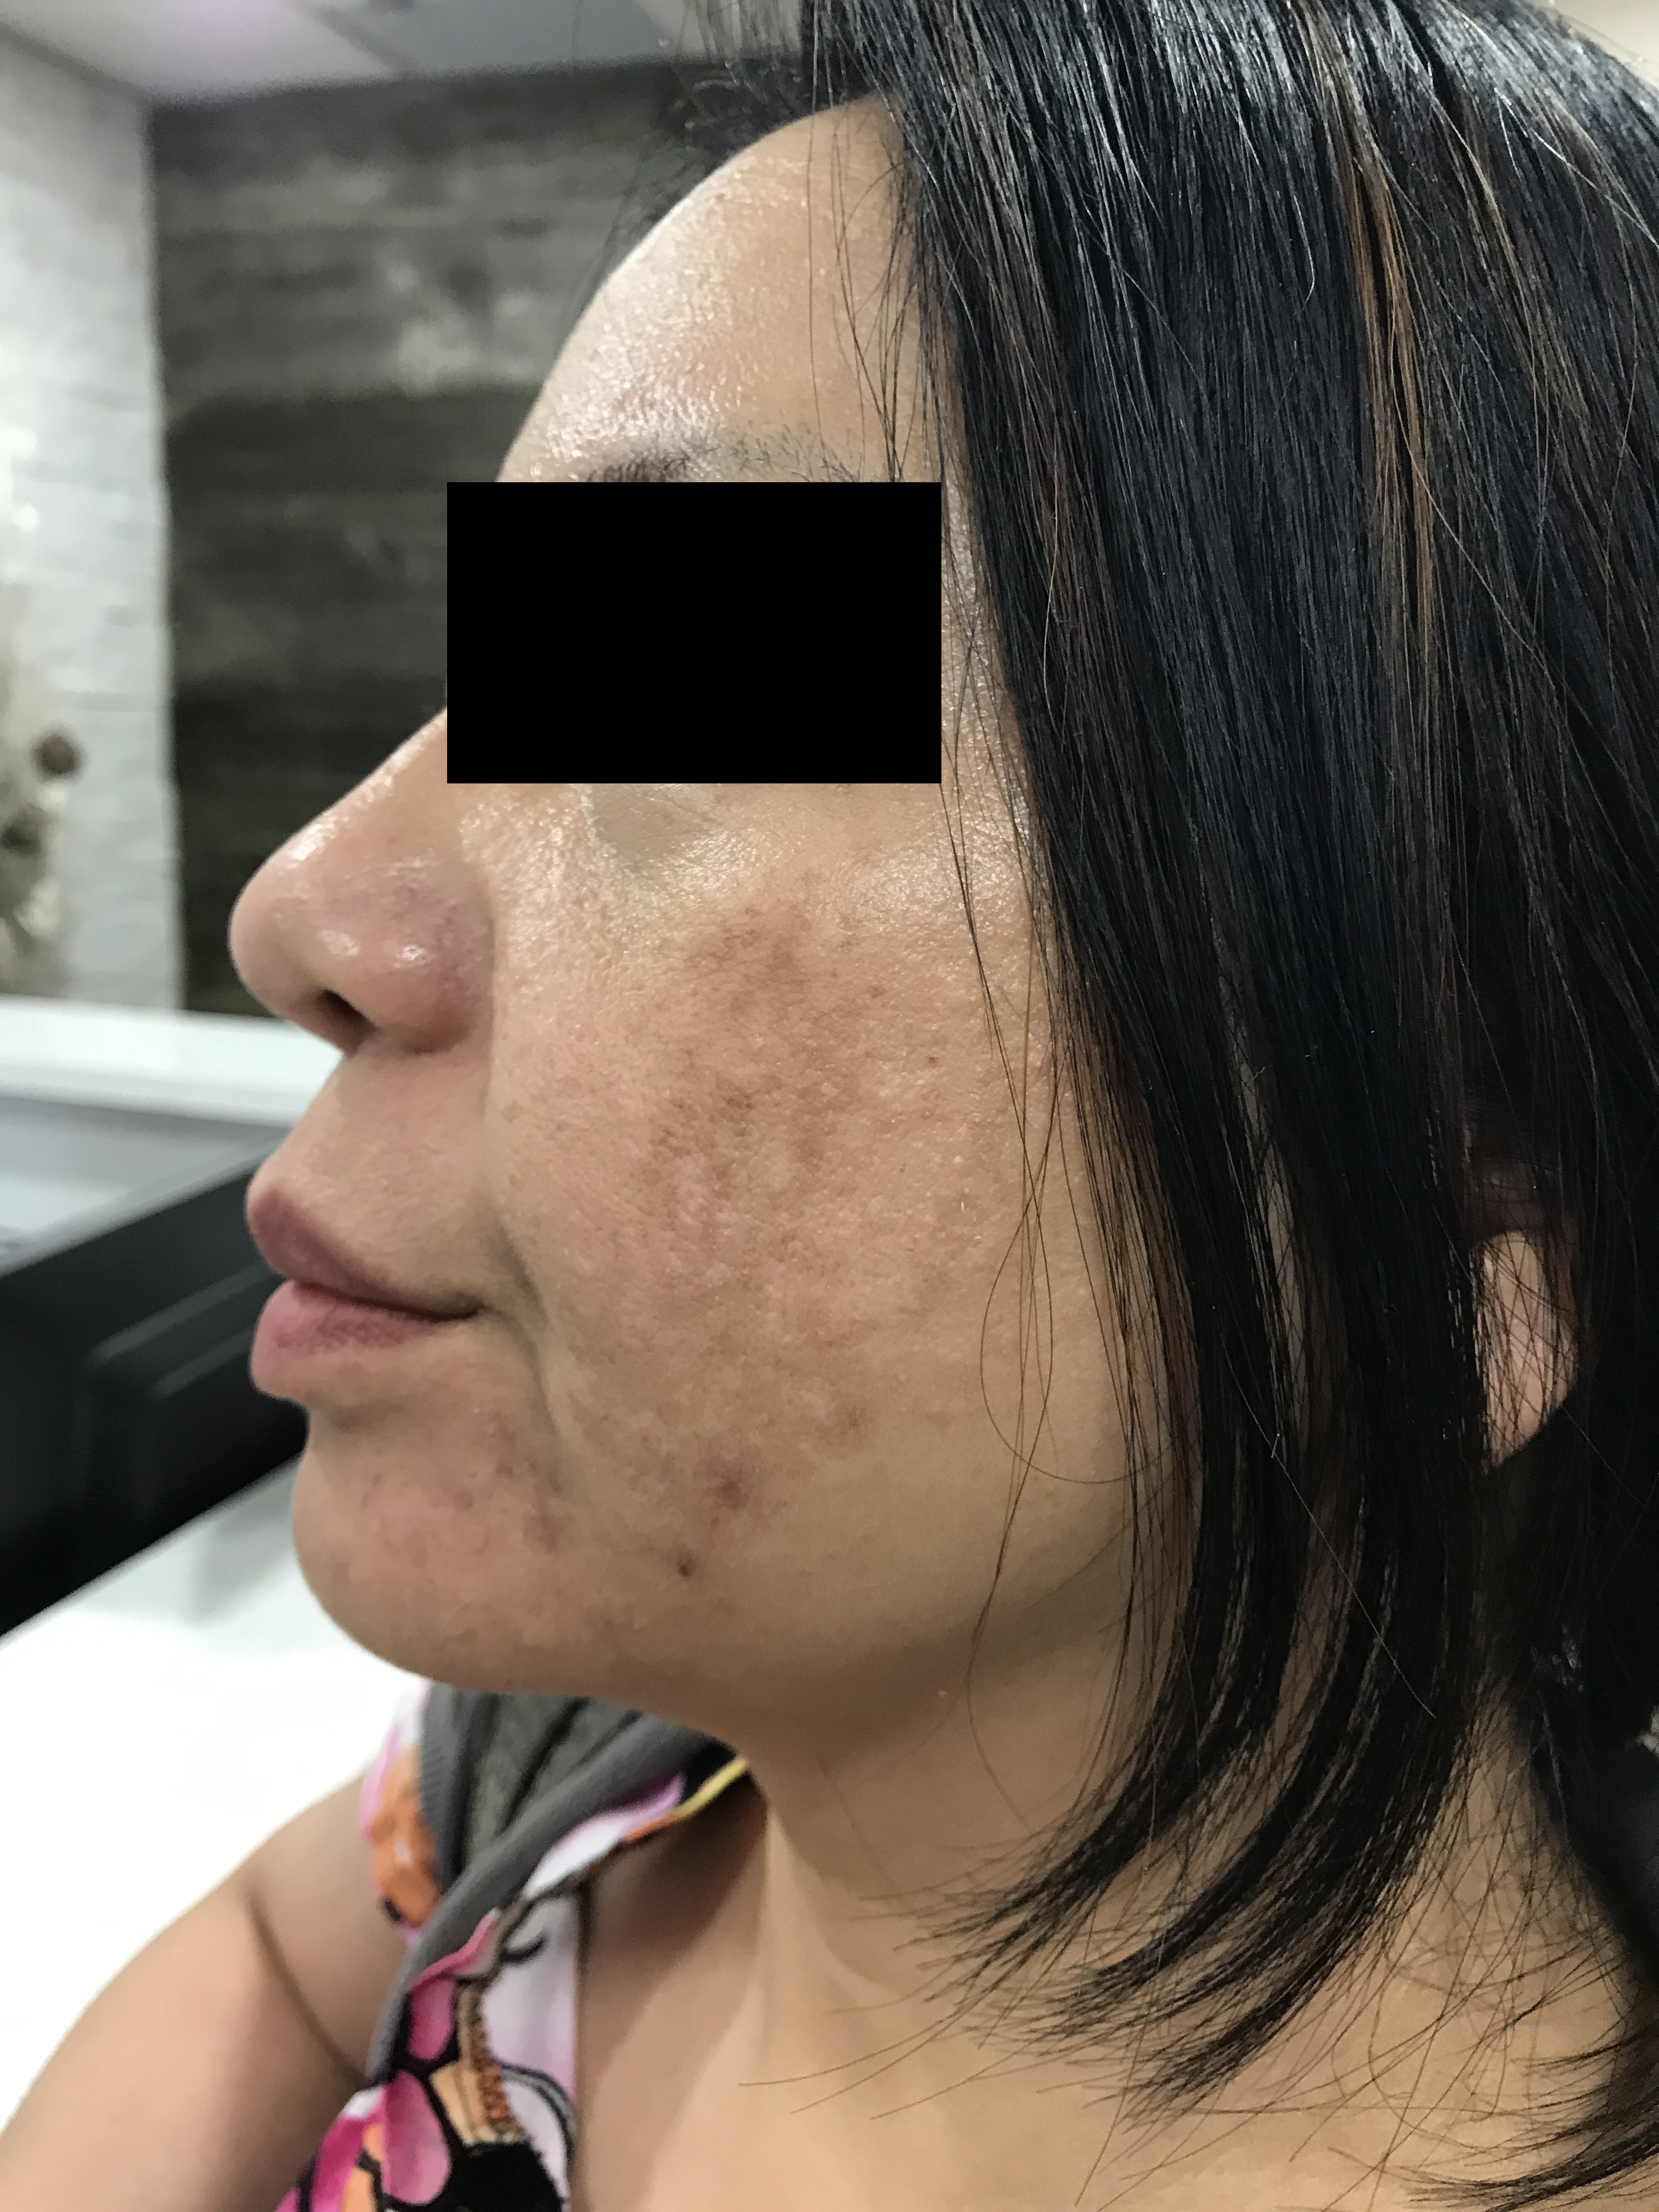 MicroNeedling Two weeks after treatment